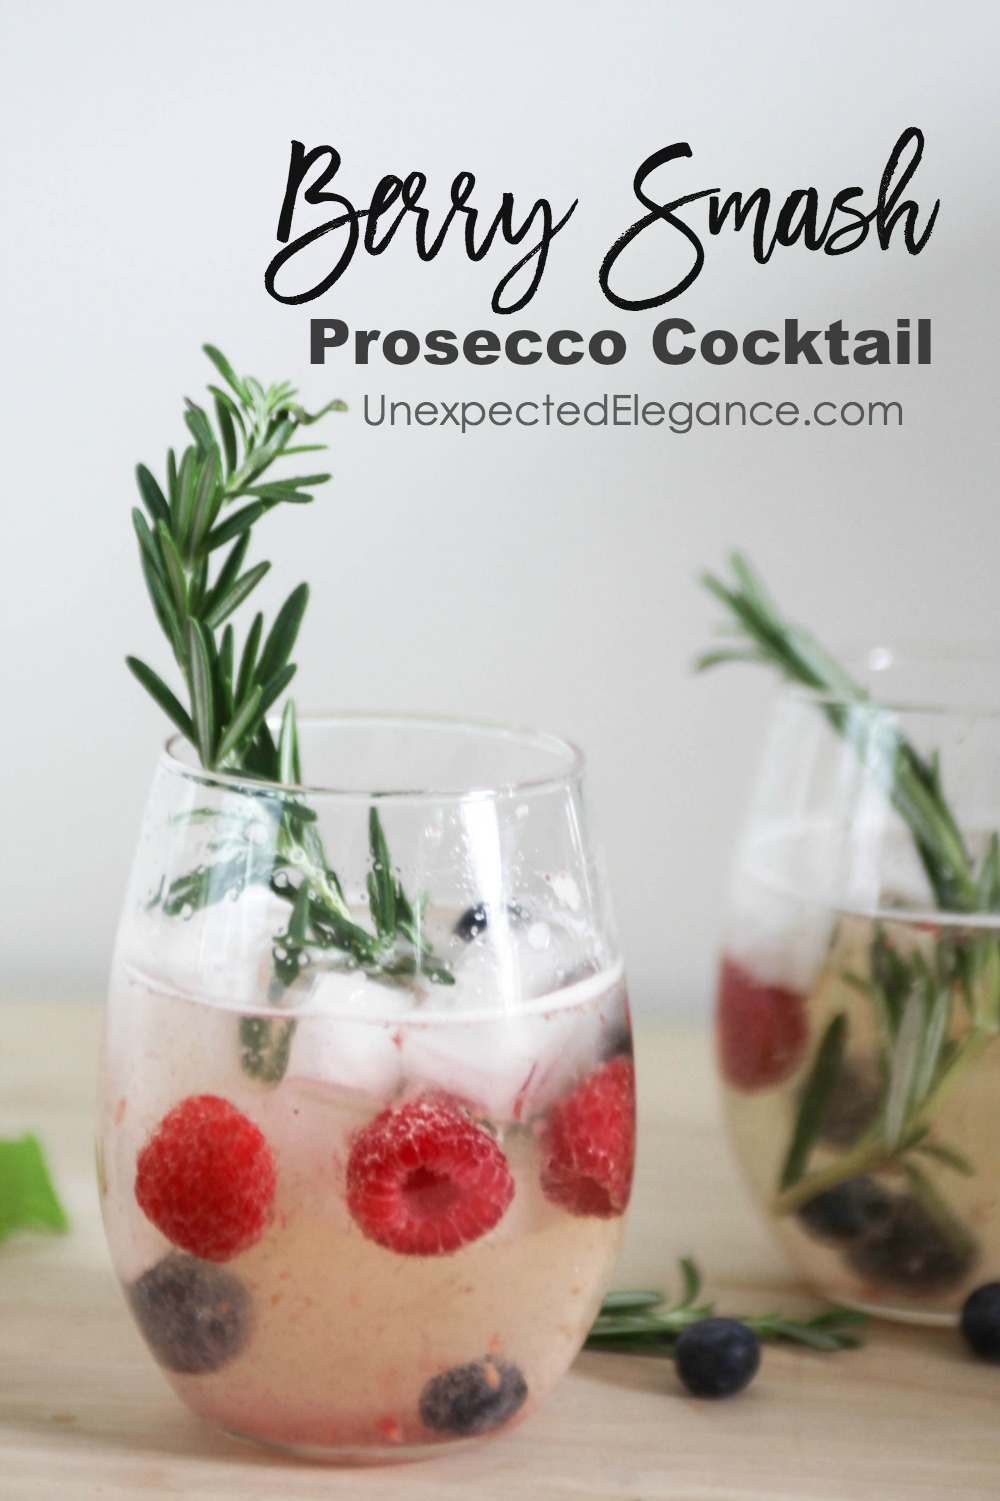 This Berry Smash Prosecco cocktail is refreshing, light and delicious!! It's perfect for a brunch, dinner, or no occasion at all.